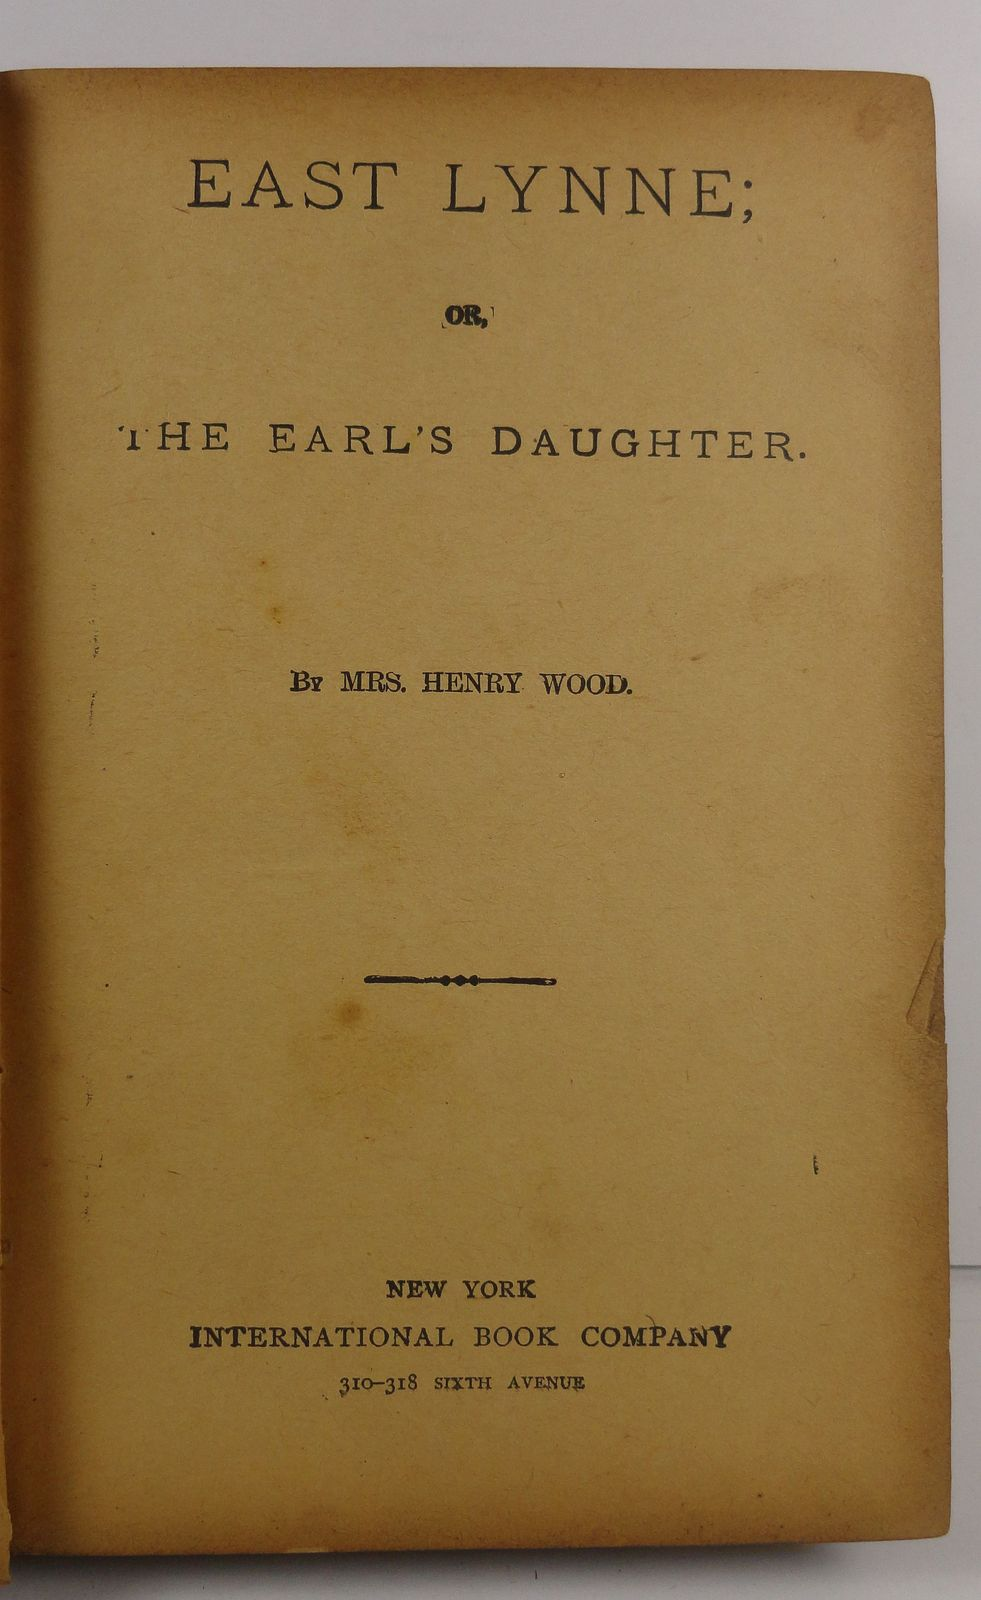 East Lynne or The Earl's Daughter by Mrs. Henry Wood